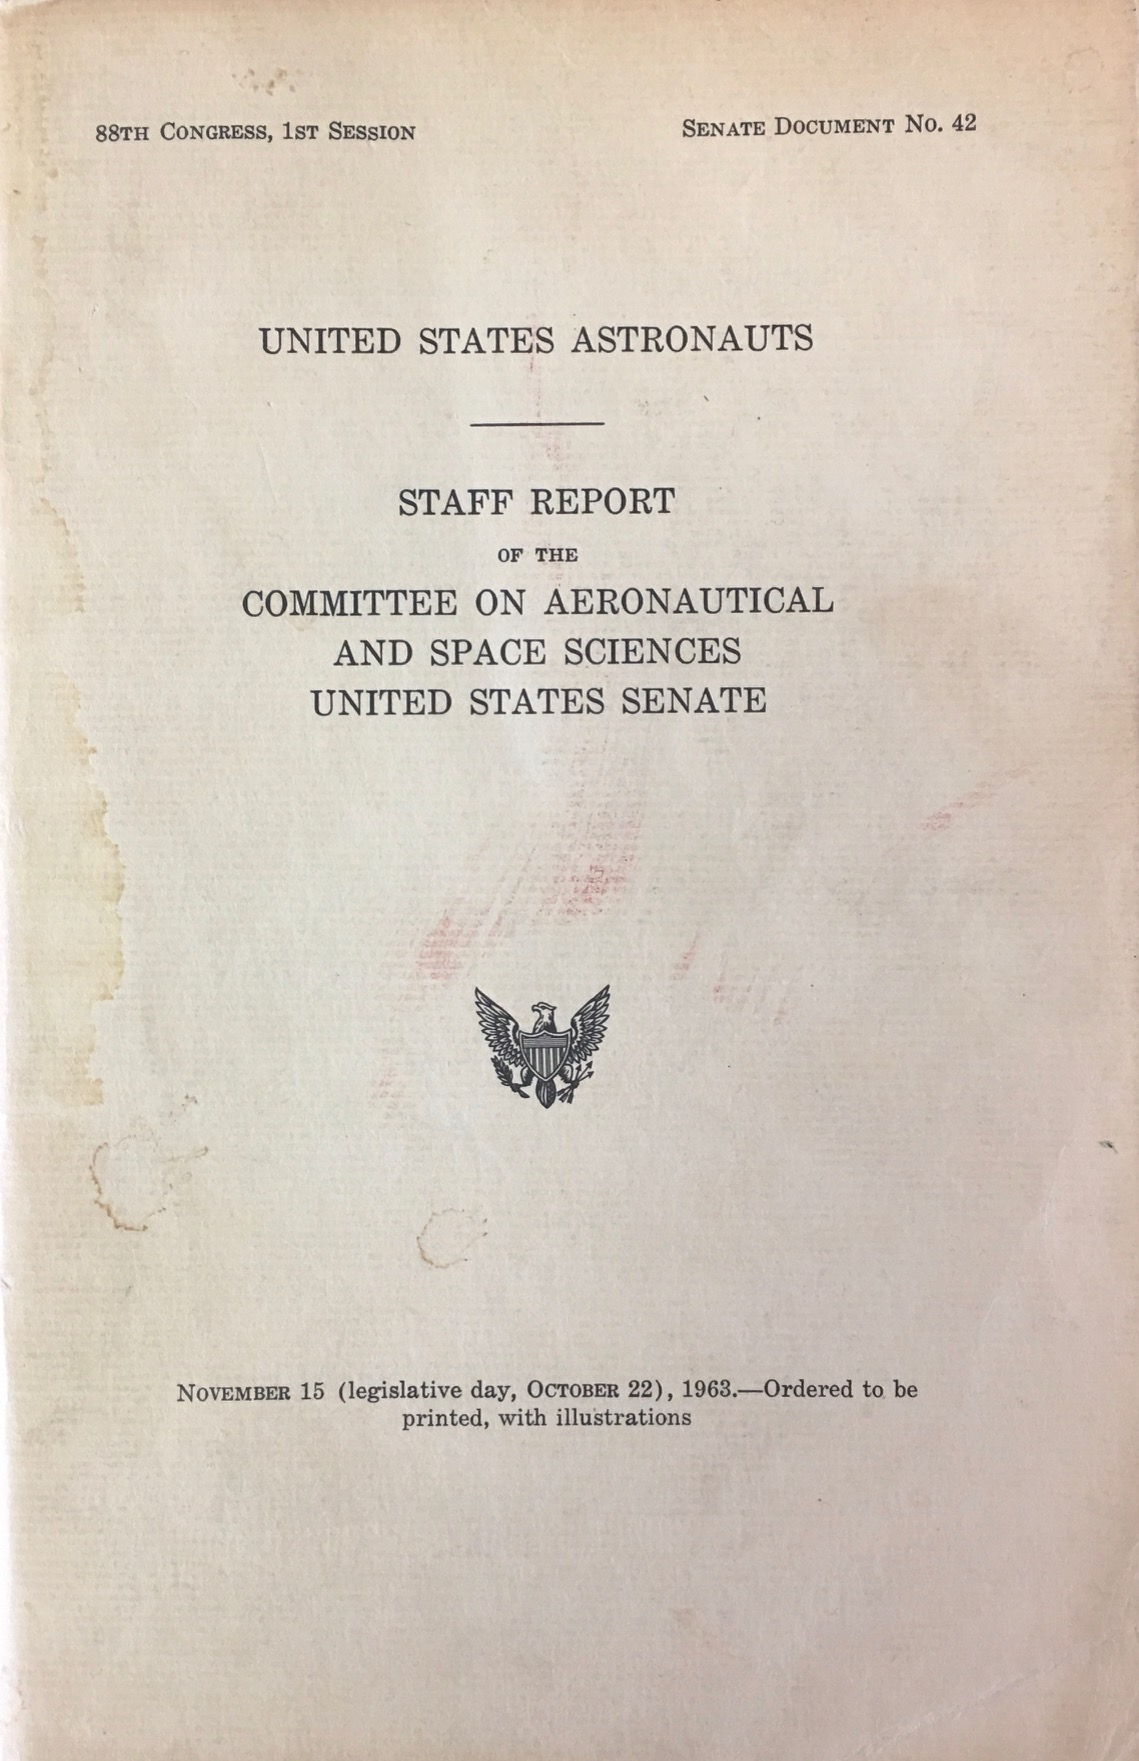 Image for United States Astronauts: Staff Report on the Committee on Aeronautical and Space Sciences United States Senate (88th Congress - 1st Session / Document No. 42)